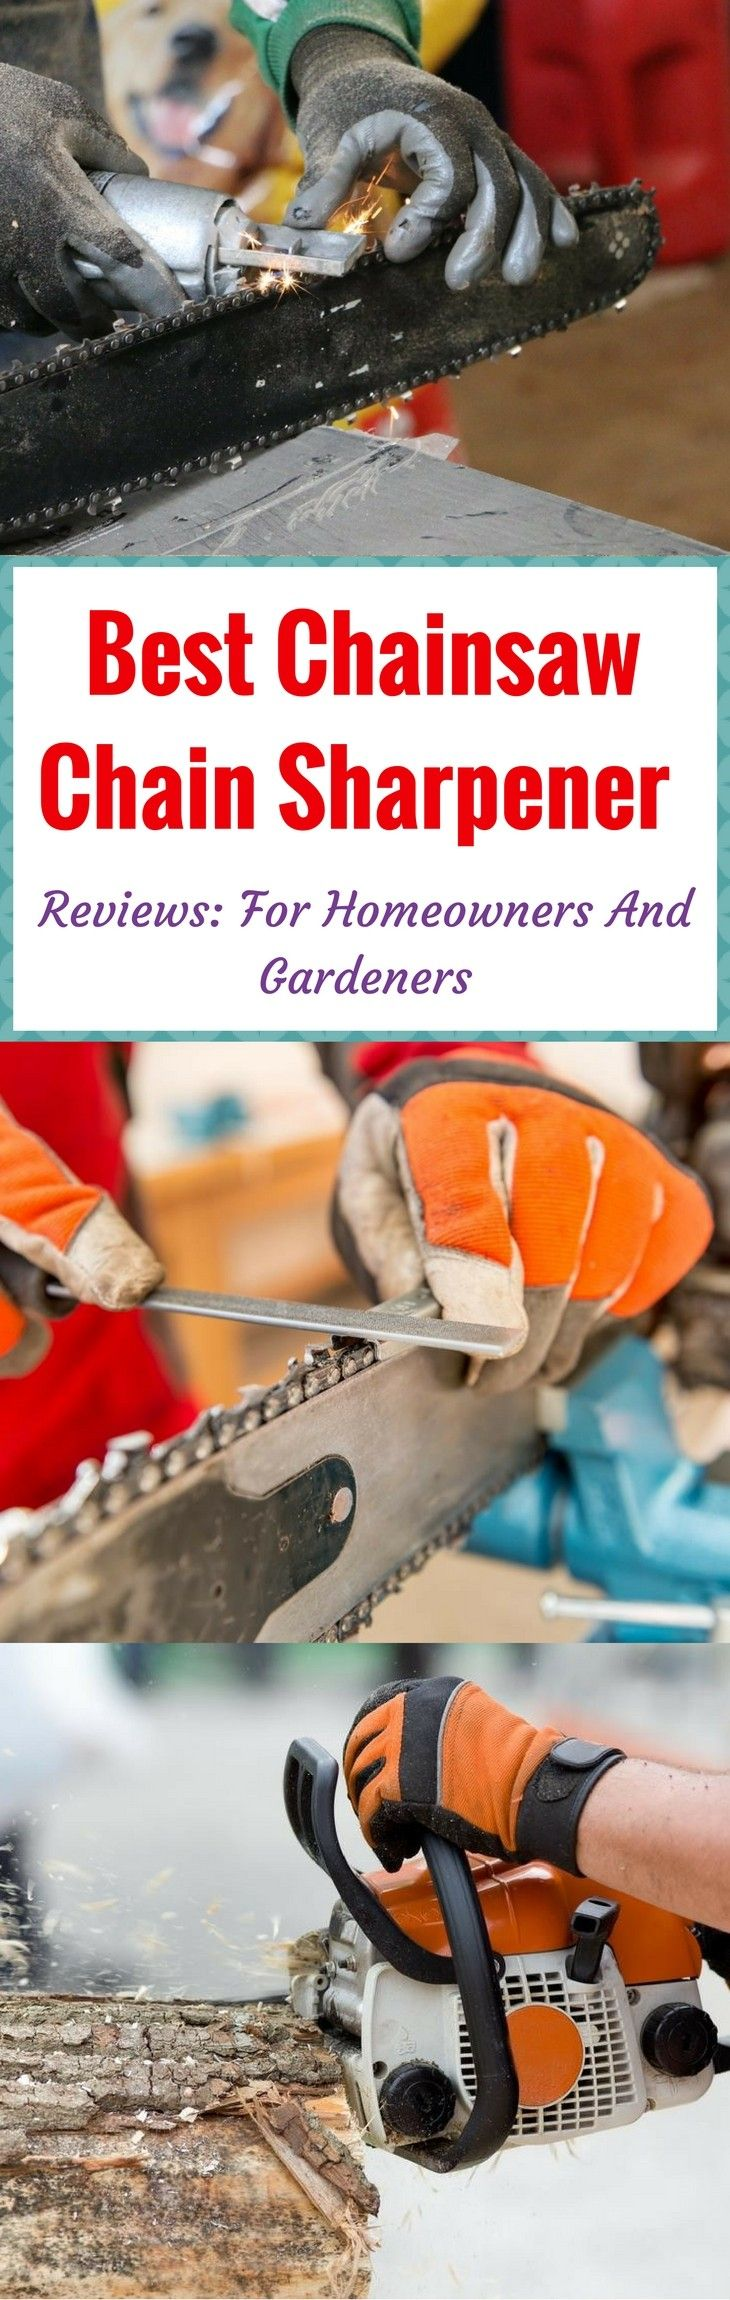 Does your chainsaw bounce when you cut large woods? In this article, learn the best chainsaw chain sharpener that would end the bluntness of your chainsaw. Read more at: https://gardenambition.com/best-chainsaw-chain-sharpener/